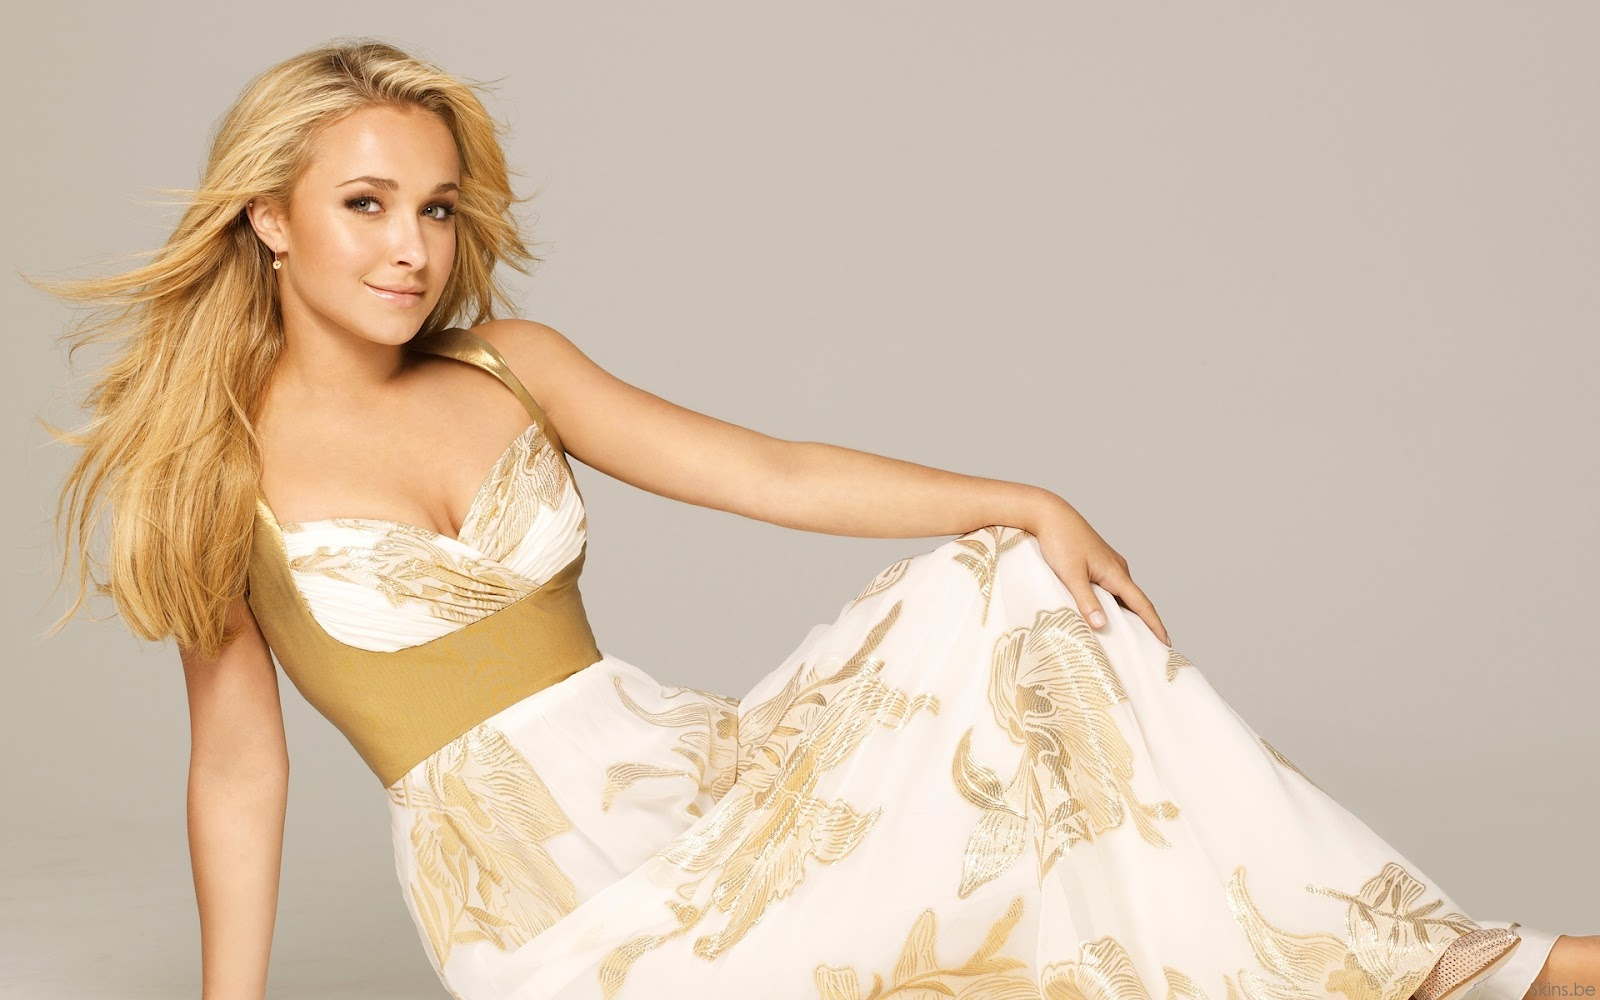 Hayden Panettiere Profile and Pictures/Photos 2012 ~ HOT ... Hayden Panettiere